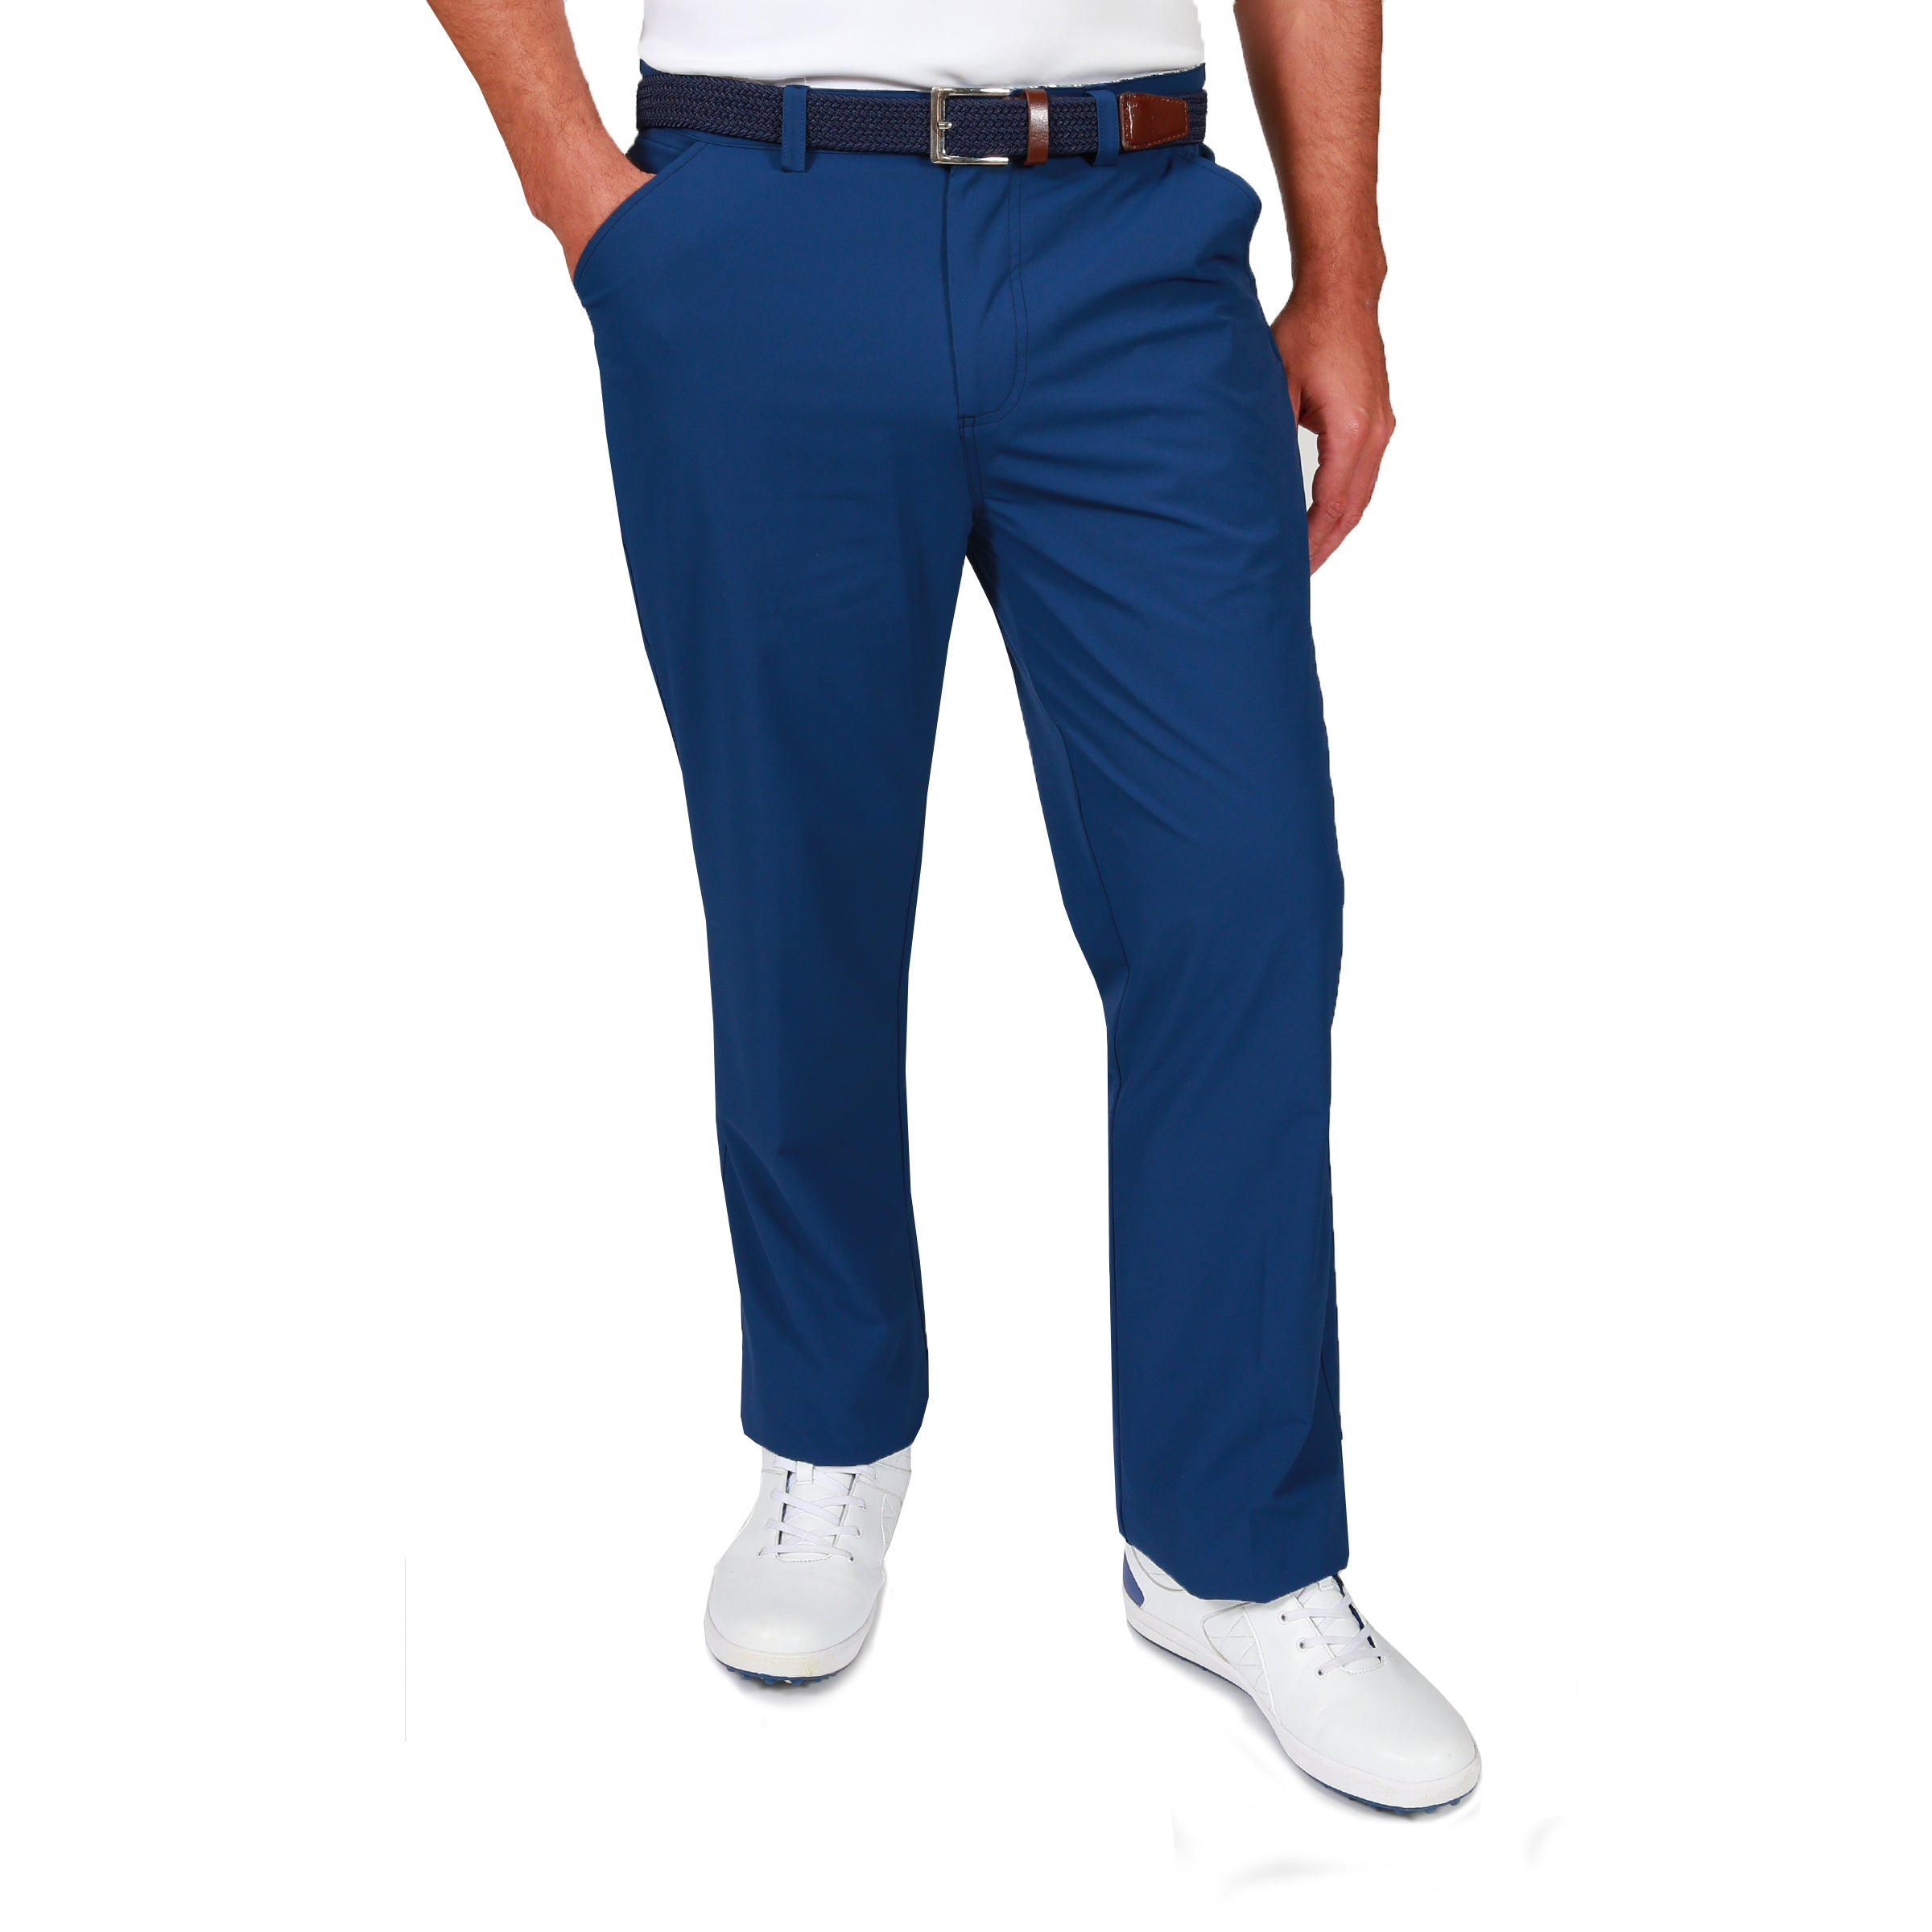 Ivan Water Repellent Golf Trousers - Navy Peony by  Walrus Apparel